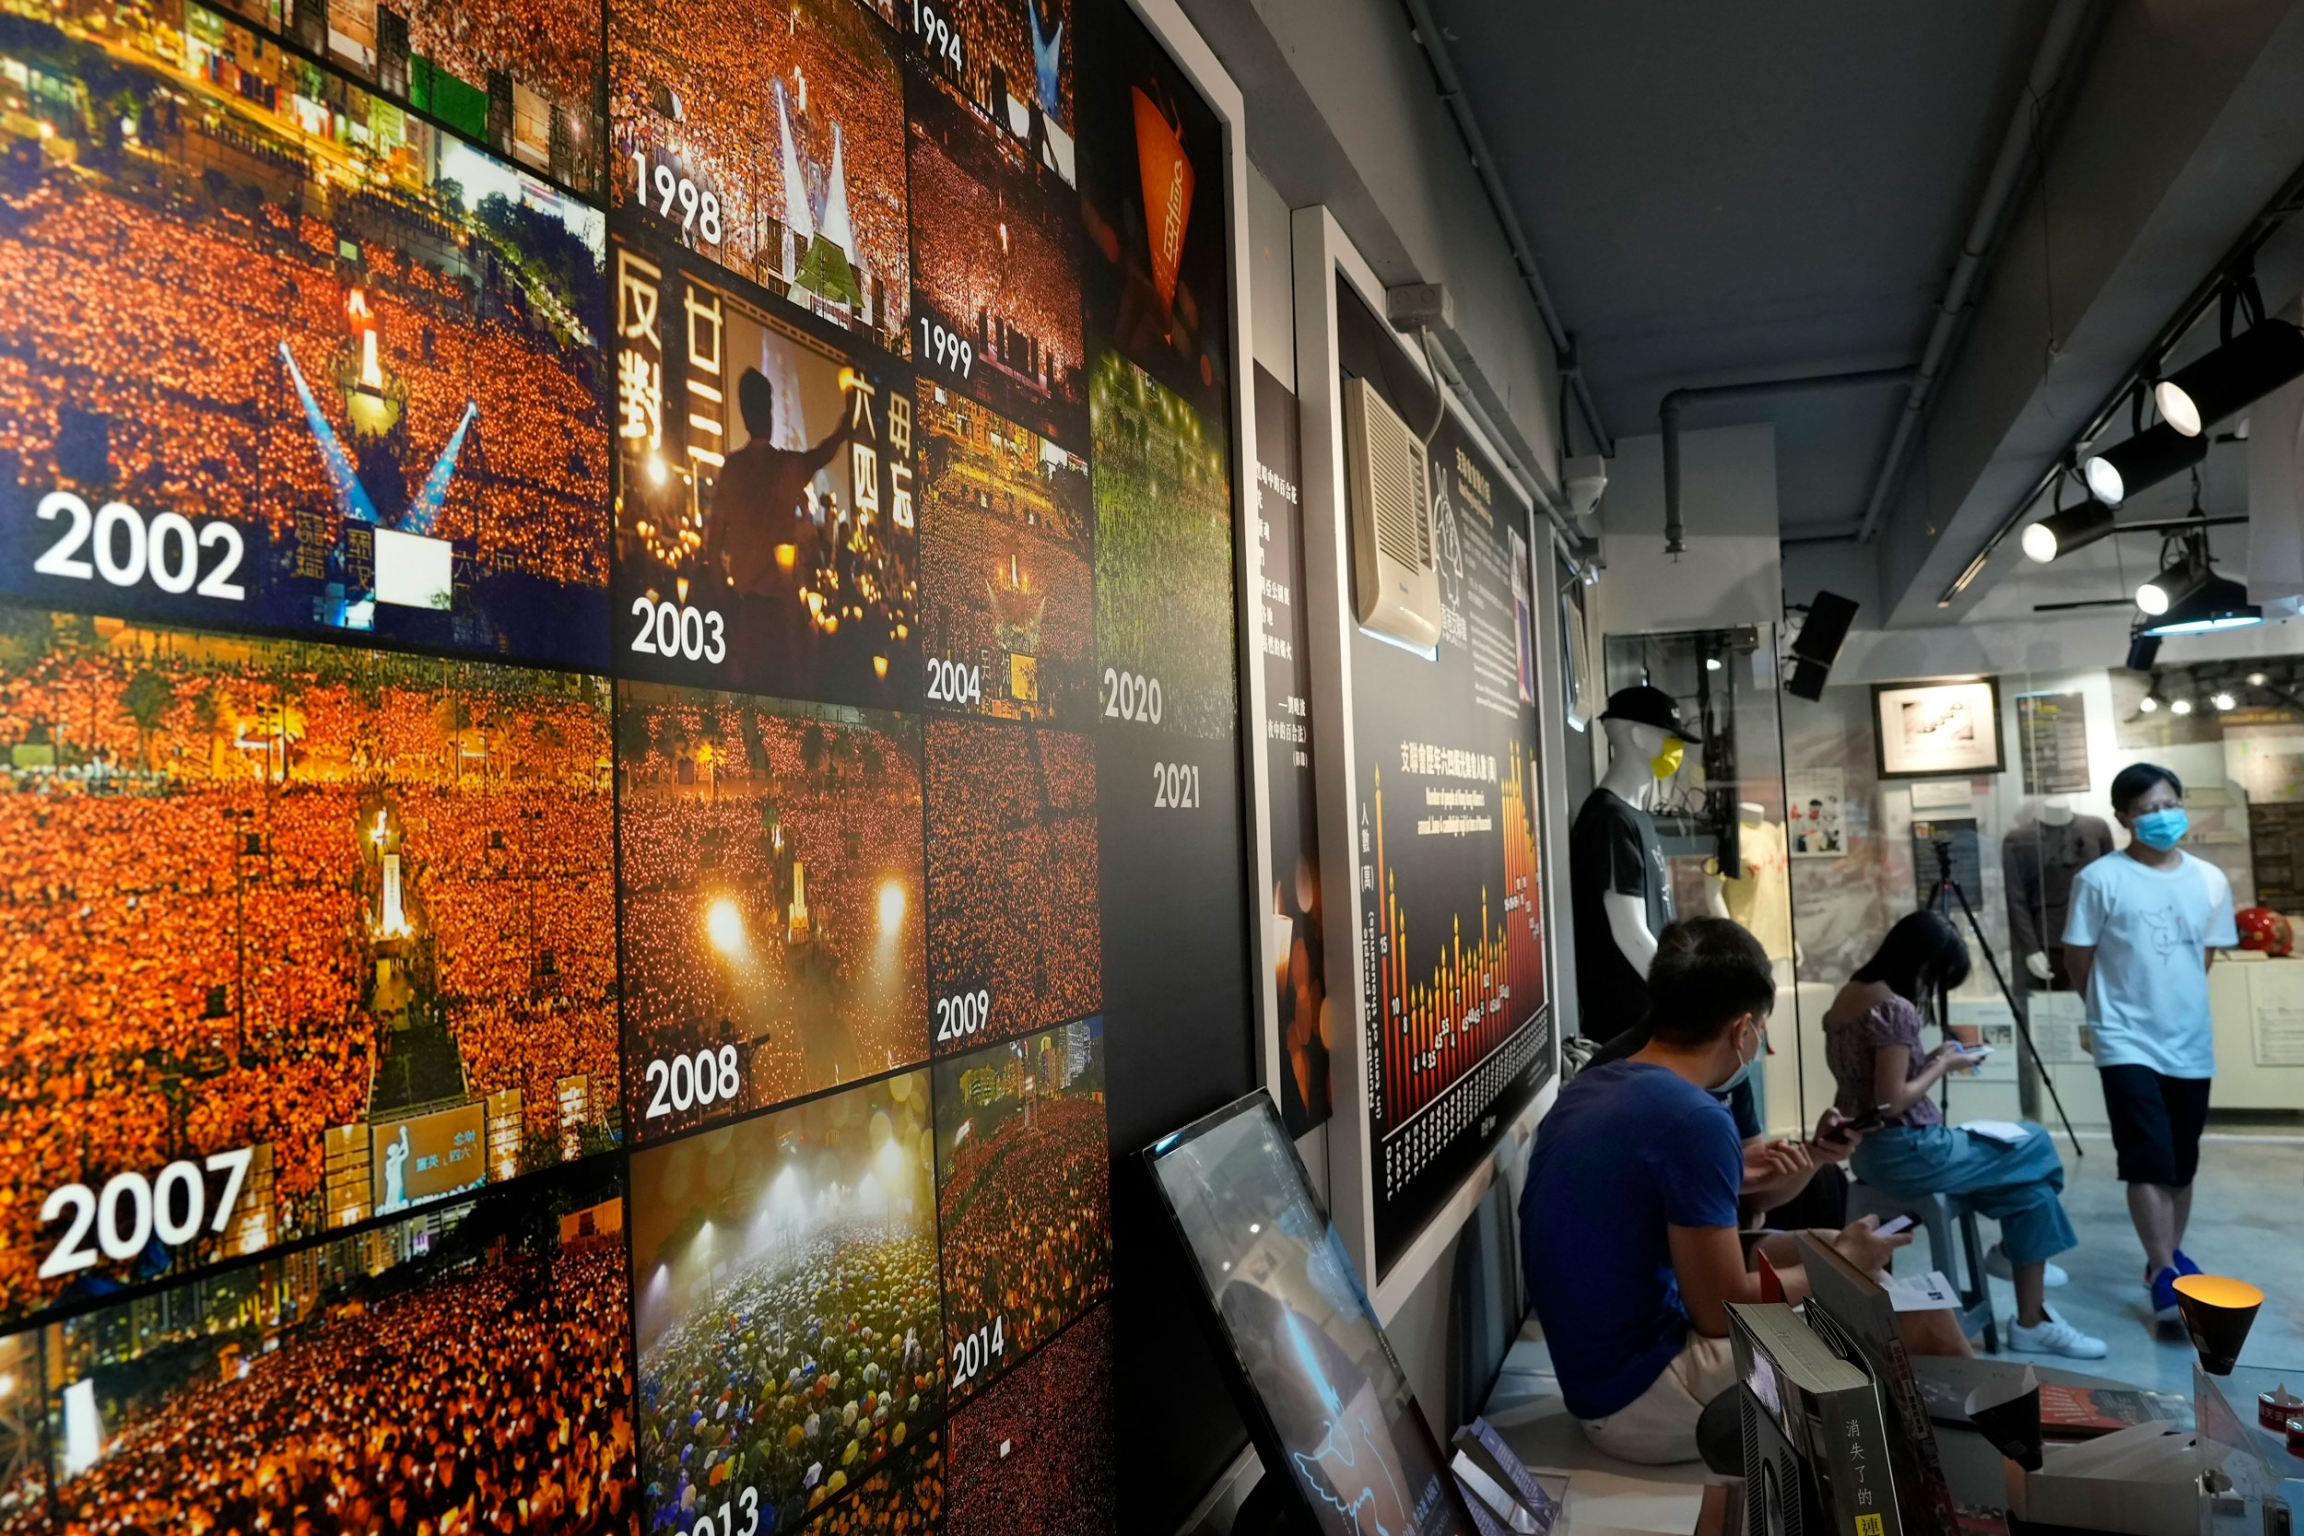 A wall of photographs showing hundreds of people gathered and holding up lit candles.